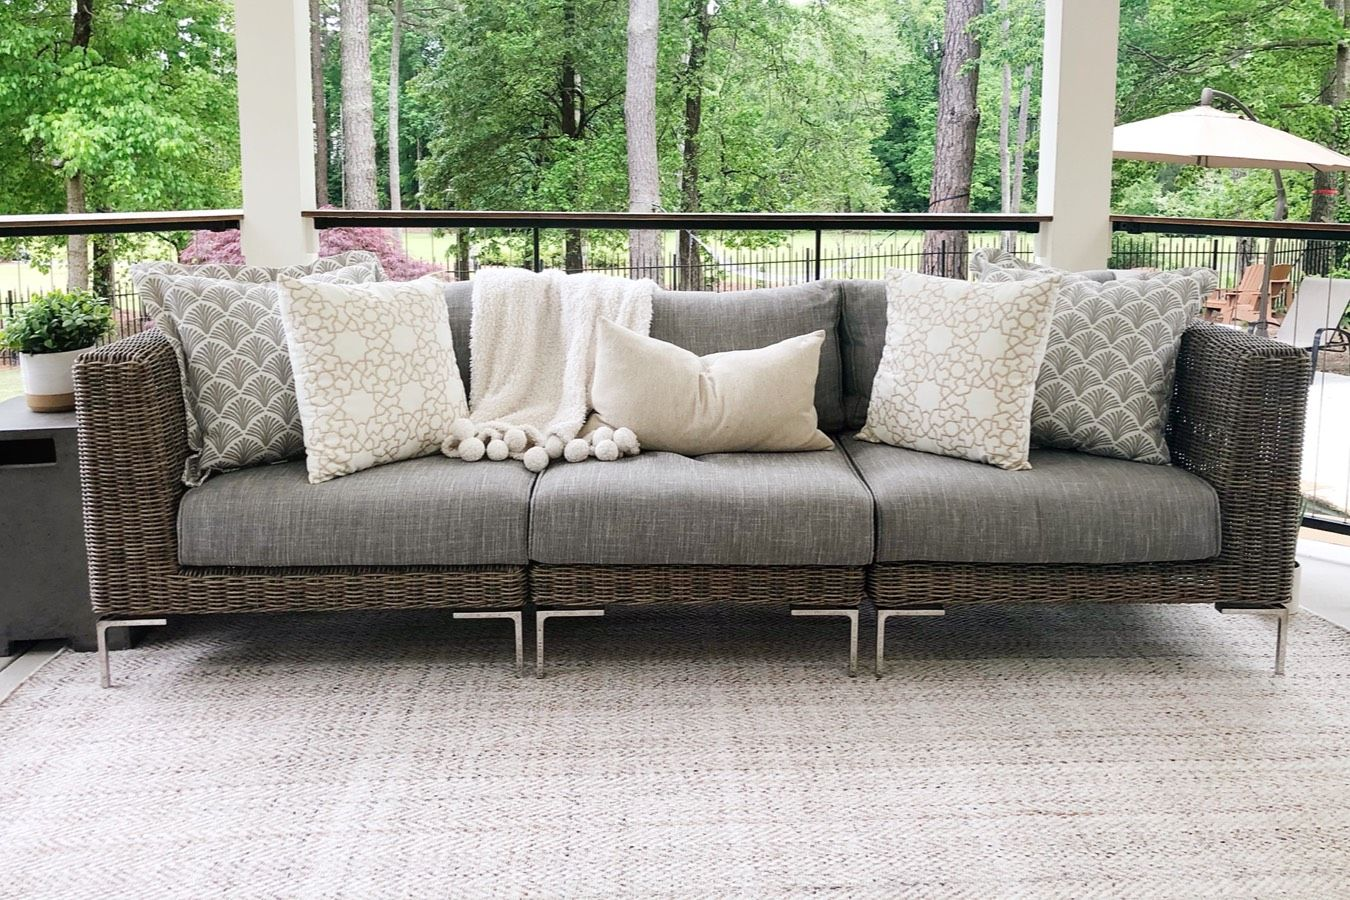 Wicker outdoor furniture with grey and cream colored cushions and pillows